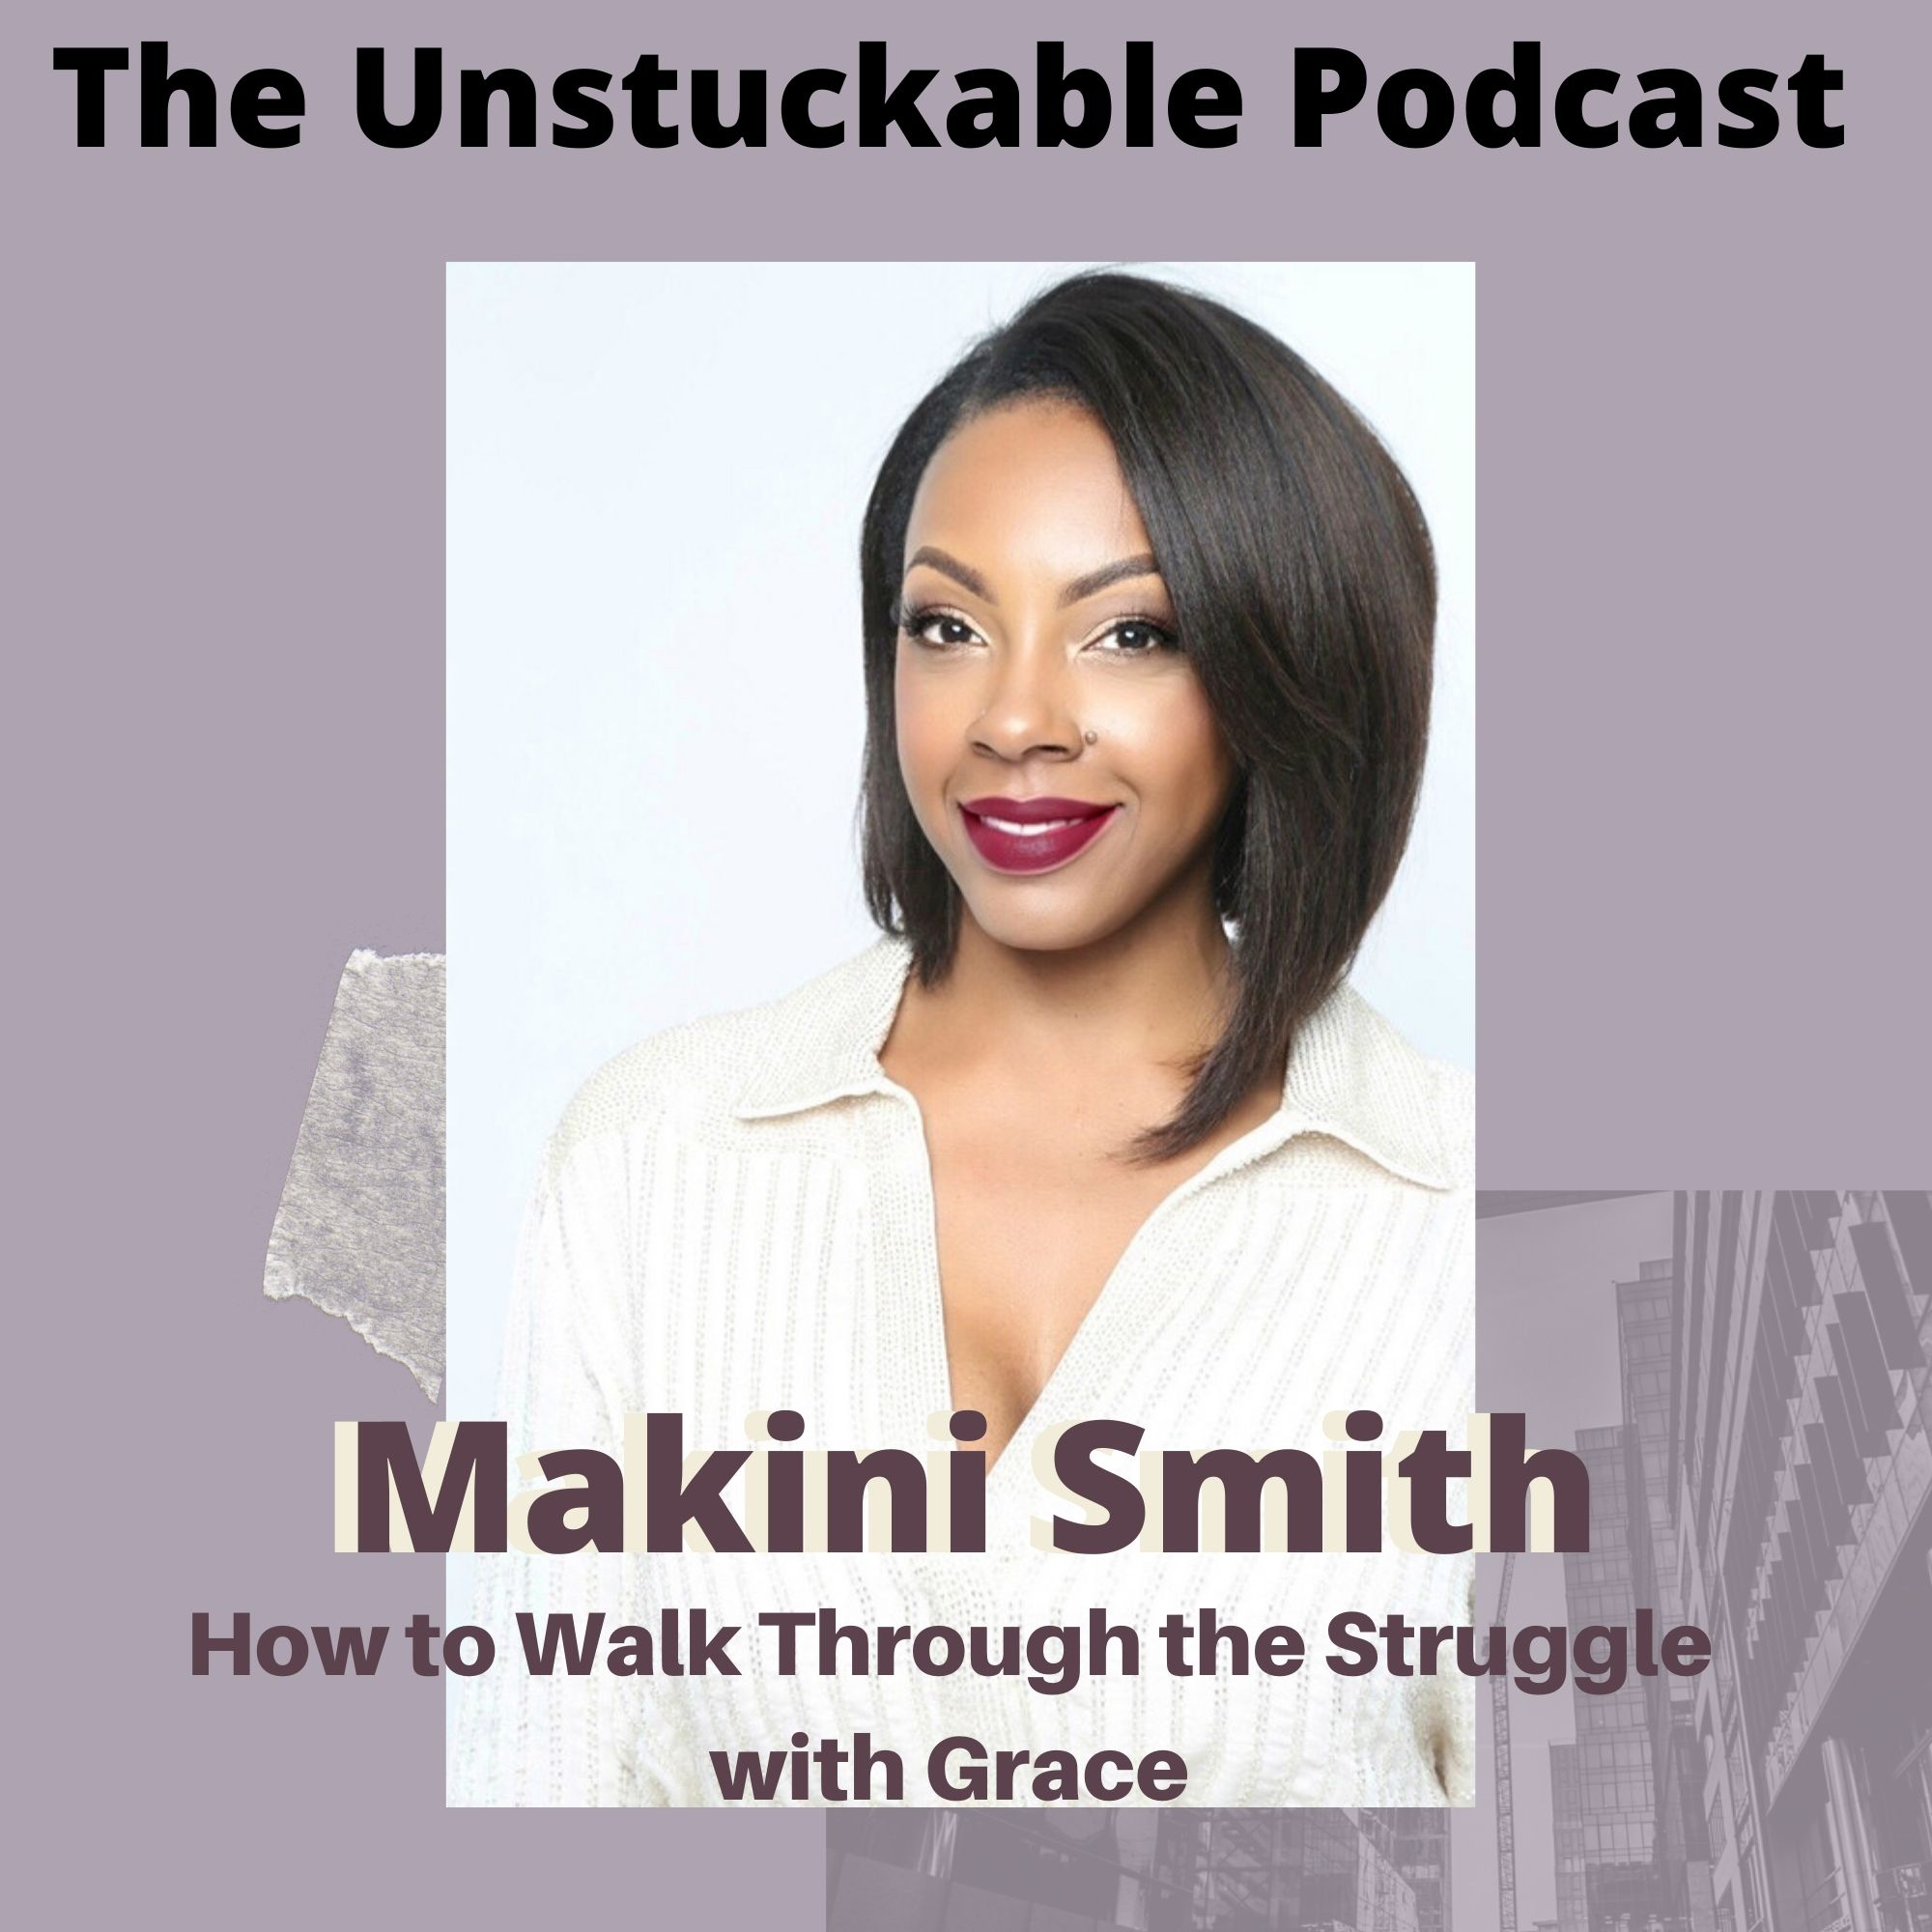 How to Walk Through the Struggle with Grace